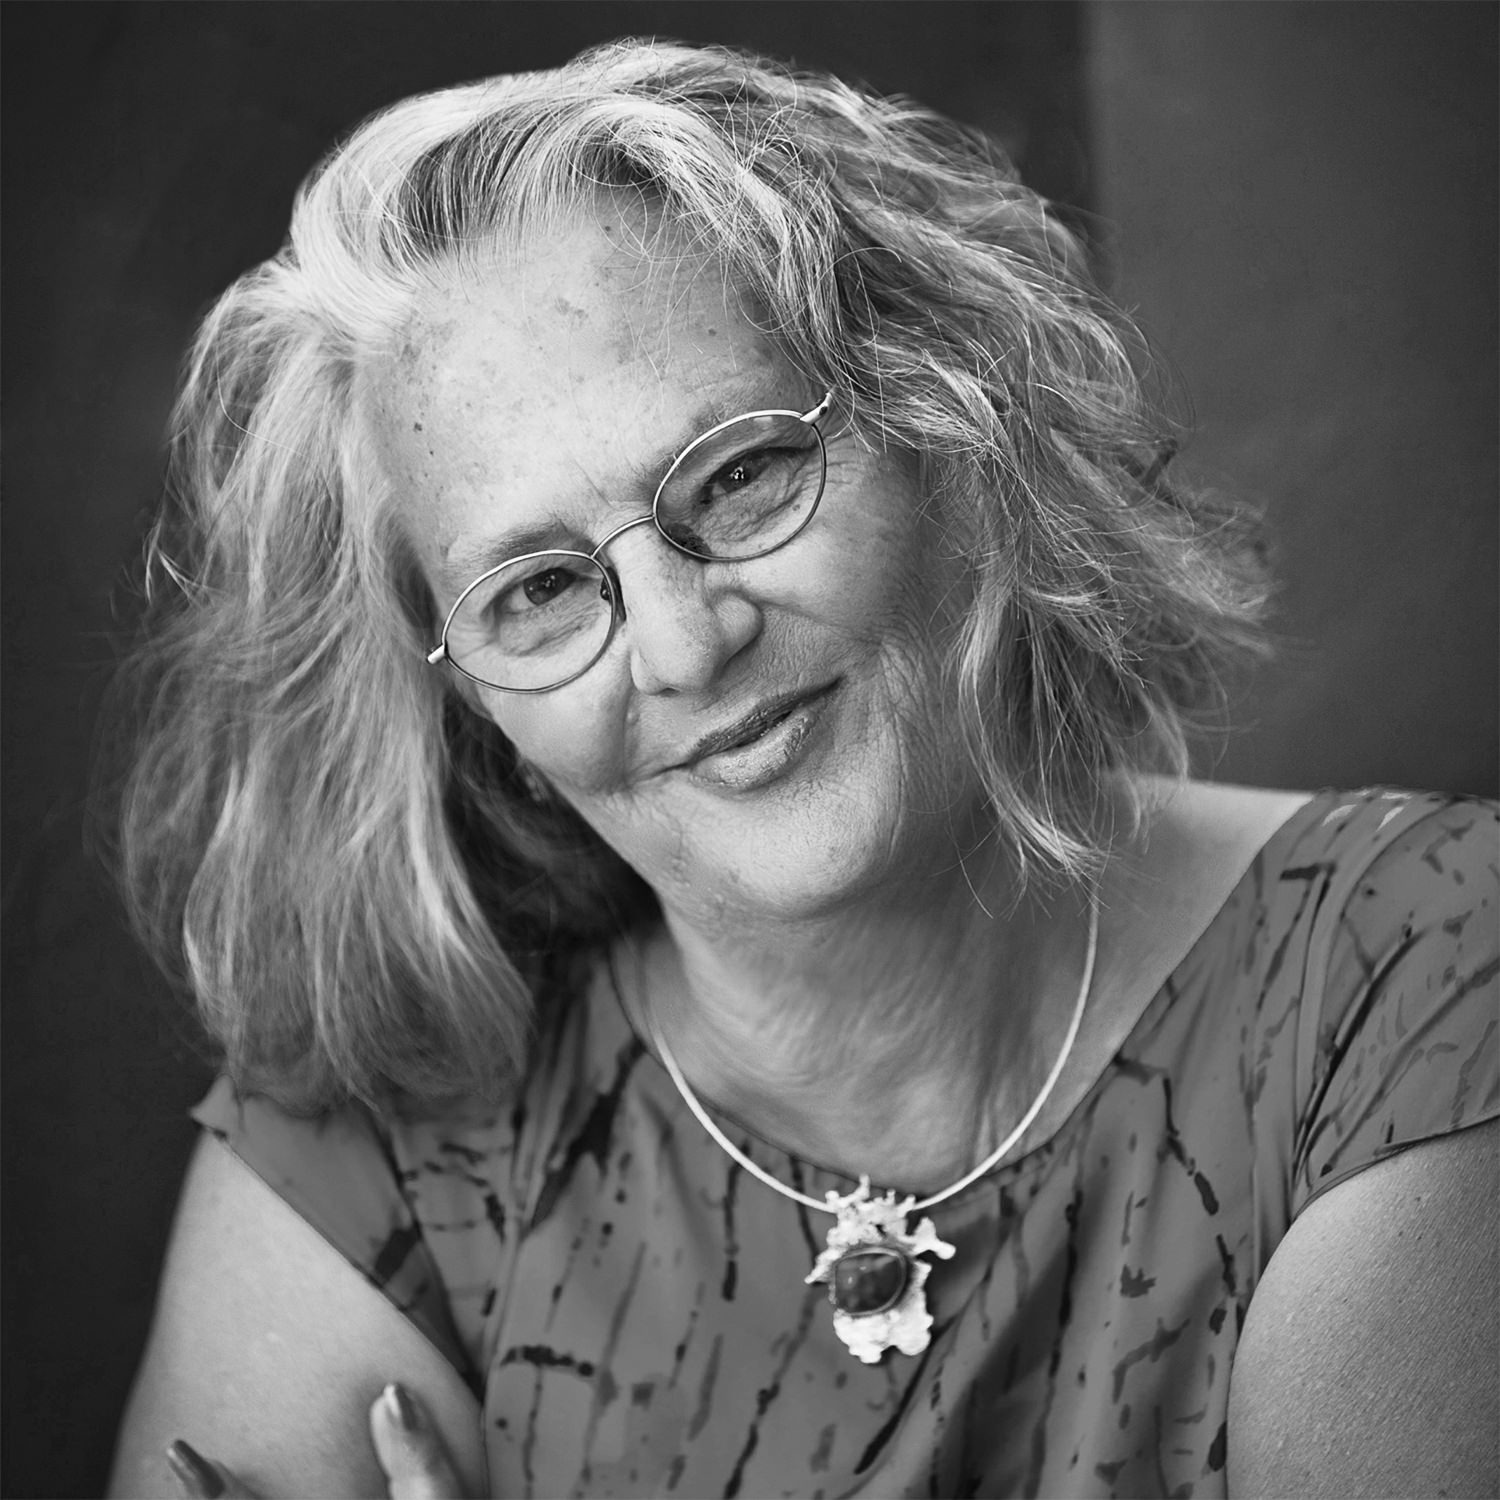 Marilyn Steele - Jungian PsychologistDr. Marilyn Steele is a Jungian psychologist, author, speaker, shamanic dreamer and mentor to PrimeTime (50+) women. She works with visionary entrepreneurs, transformational leaders or aspiring leaders, writers, healers, creatives and consultants who yearn for greater access to their feminine power and a path to bring their wild wisdom into the world. Her book, The Wild Feminine: Stories to Inspire and Embolden, was released in May 2013 and recently chosen as one of The Spirited Woman Foundation's Top Book Picks. www.thewildfeminine.com